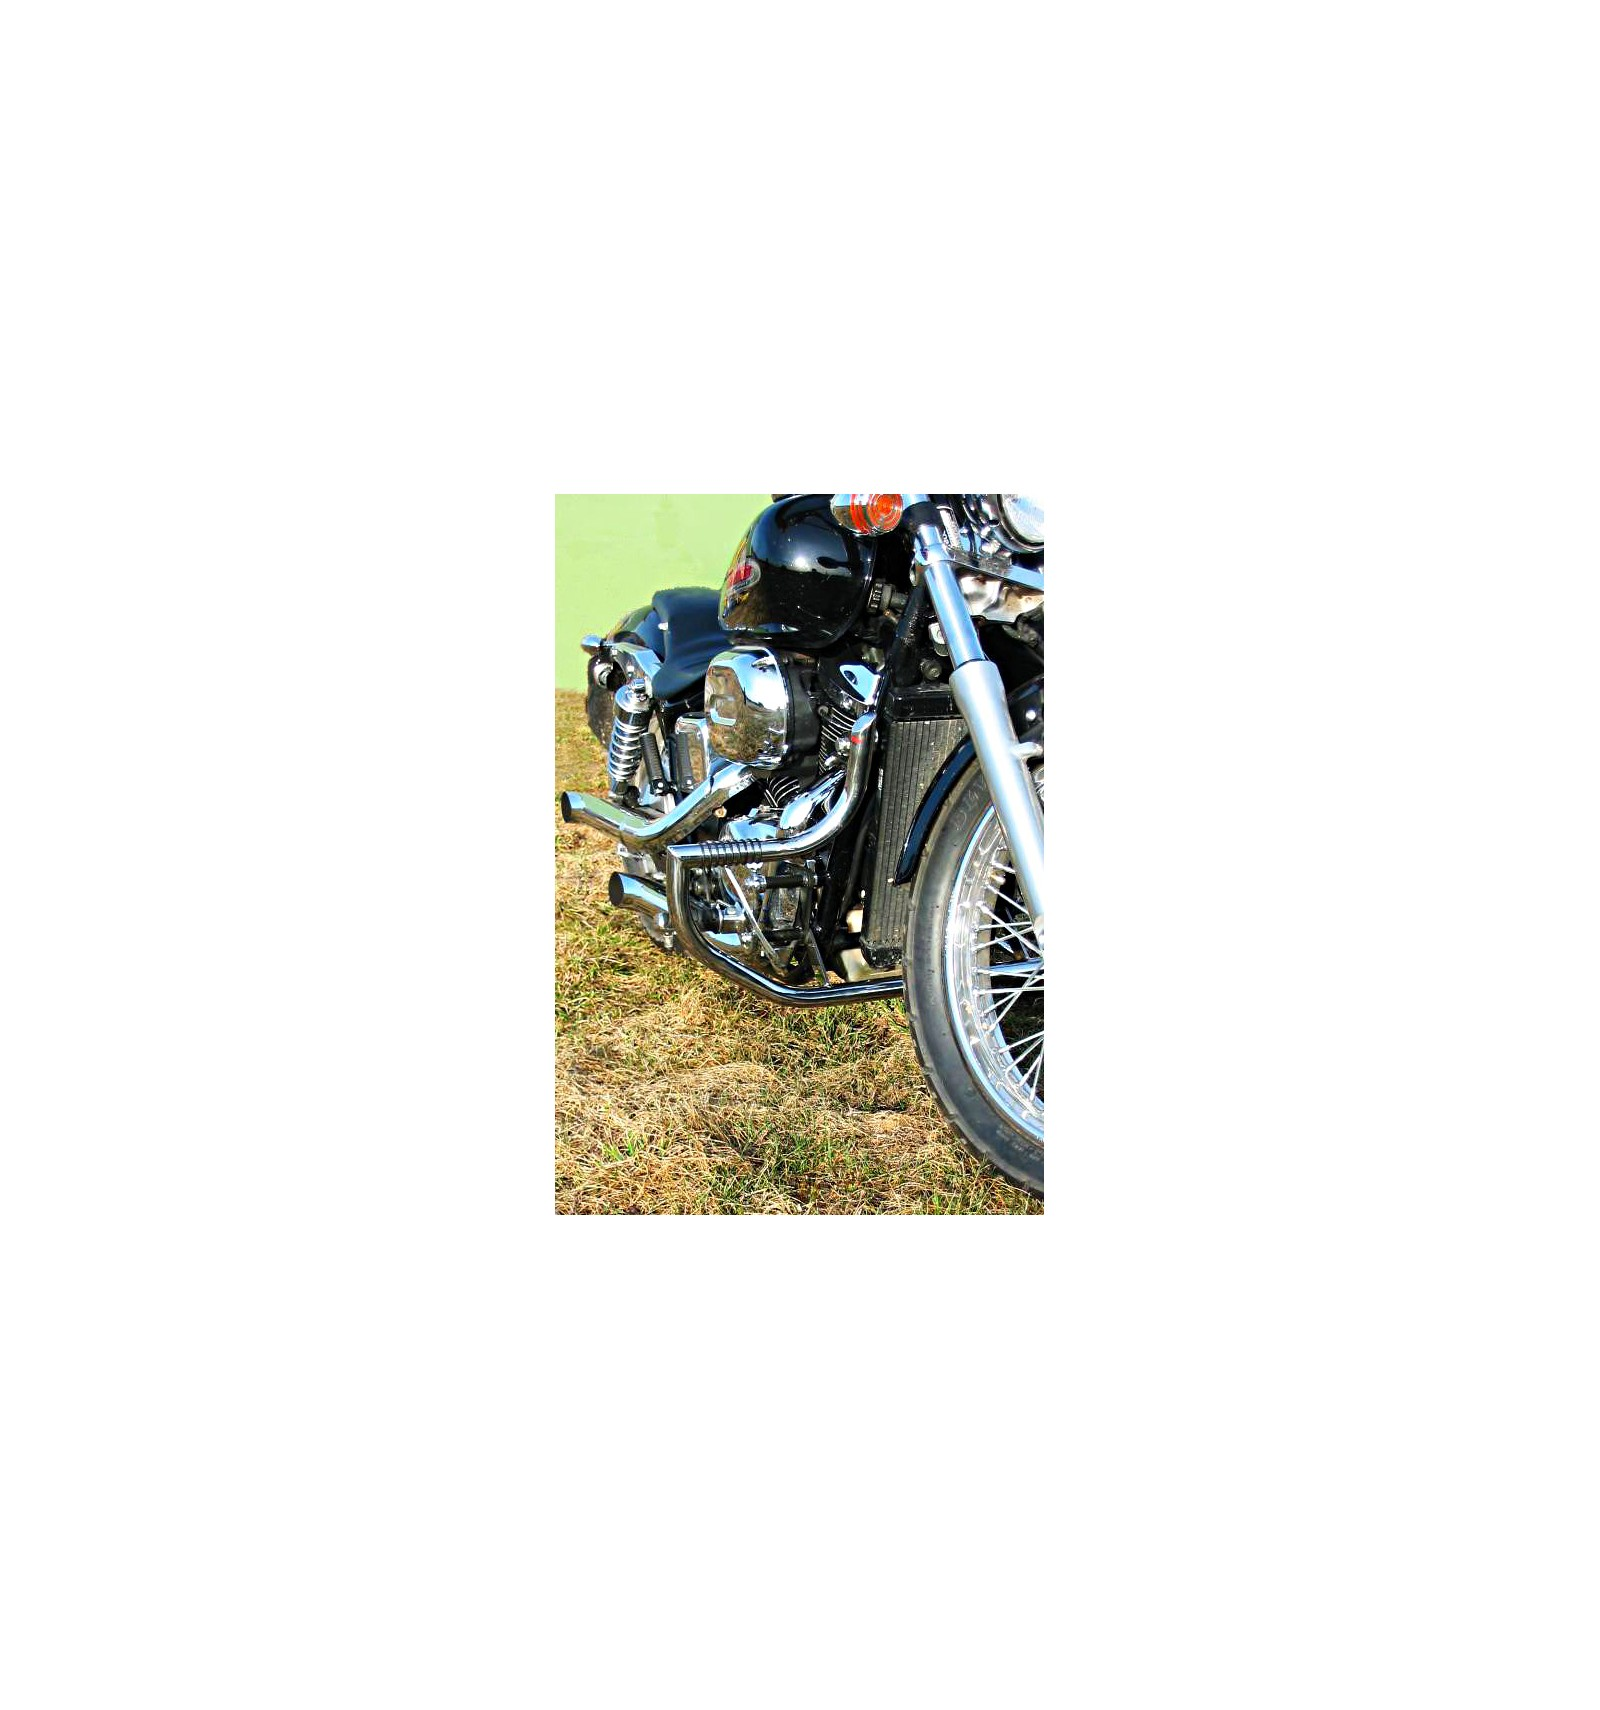 Honda Vt750 Shadow Spirit Black Widow From 2007 On Rc